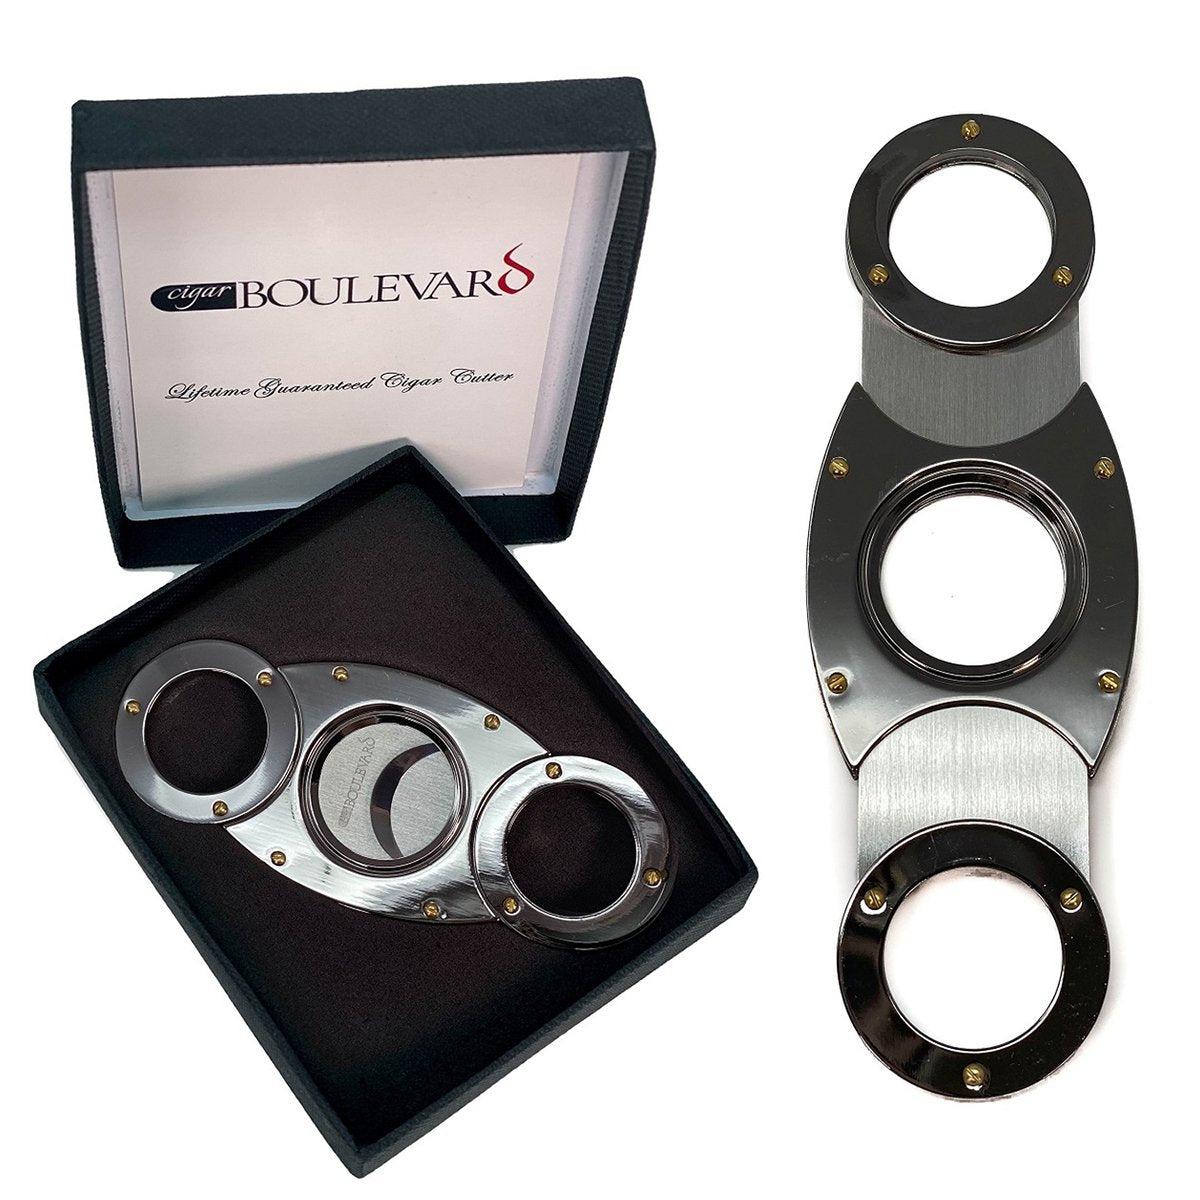 Cigar Cutter GUN METAL Double Stainless Steel Blades O Round Handles